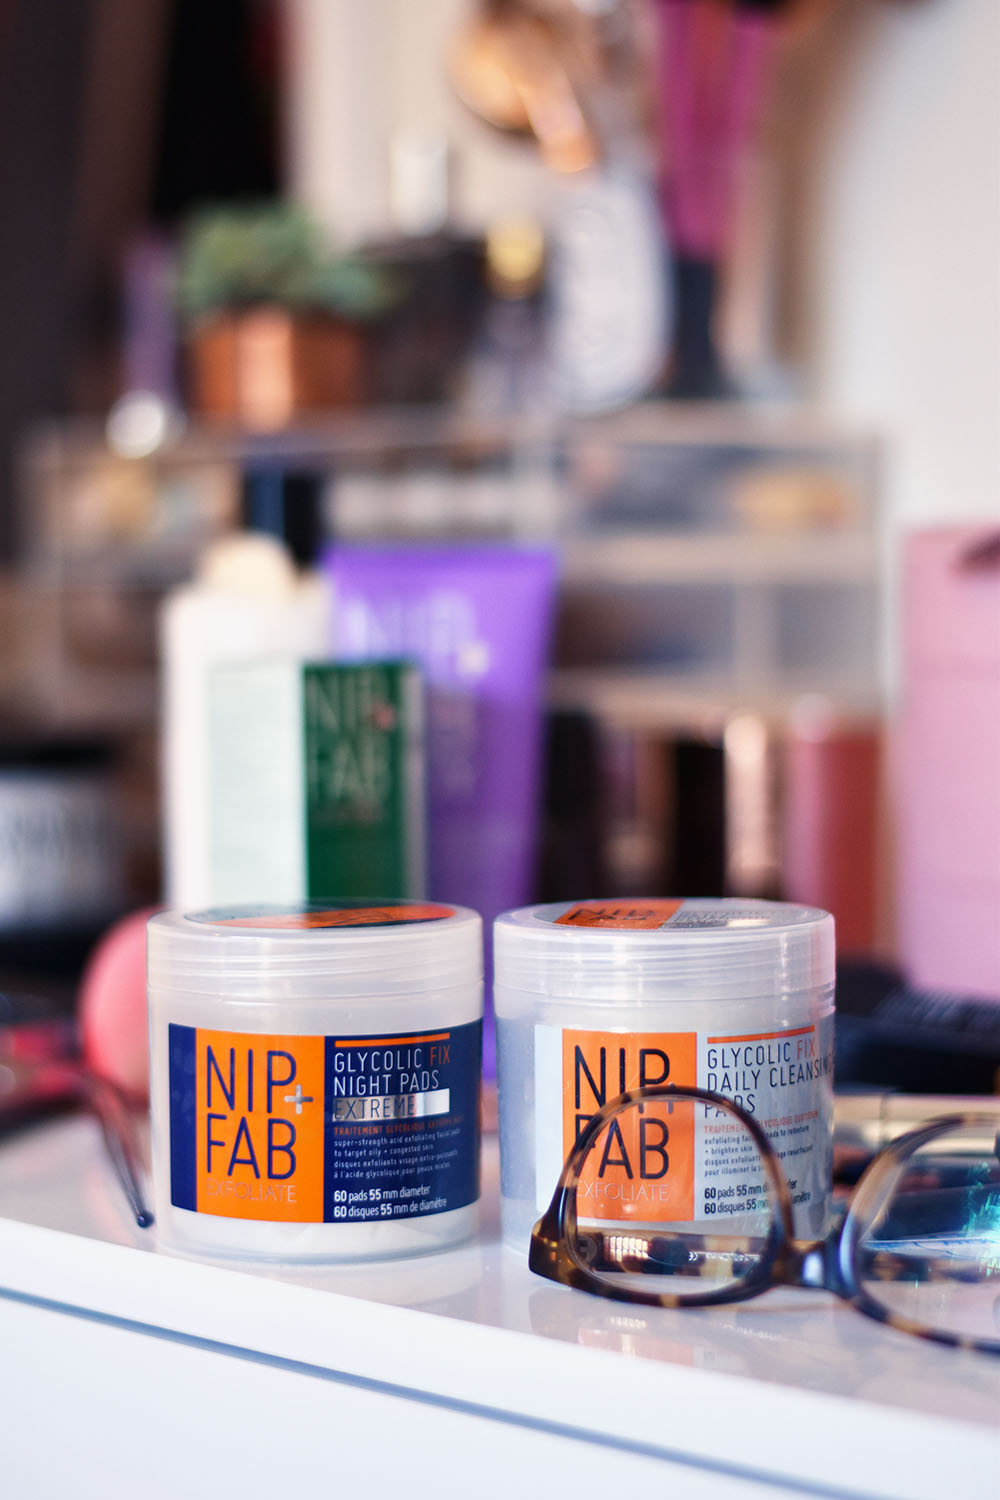 nip-fab-glycolic-fix-night-pads